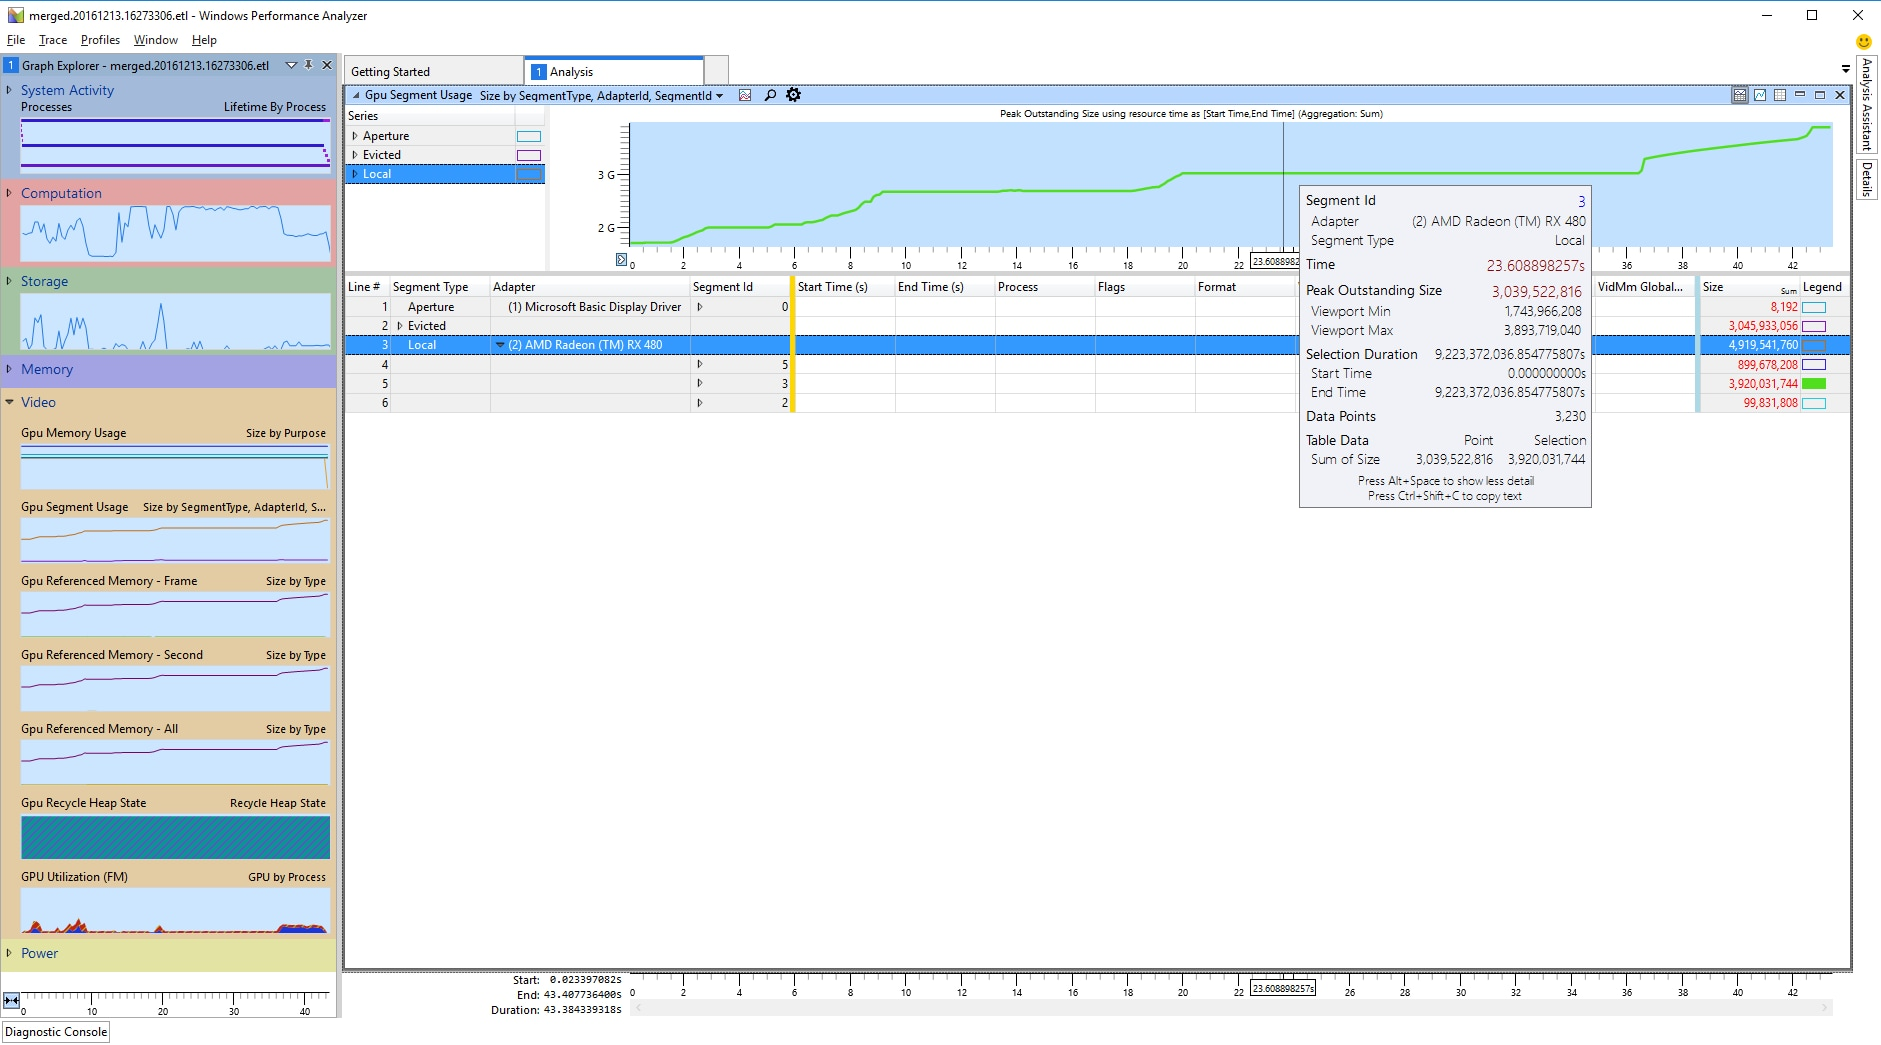 Profiling video memory with Windows Performance Analyzer - GPUOpen